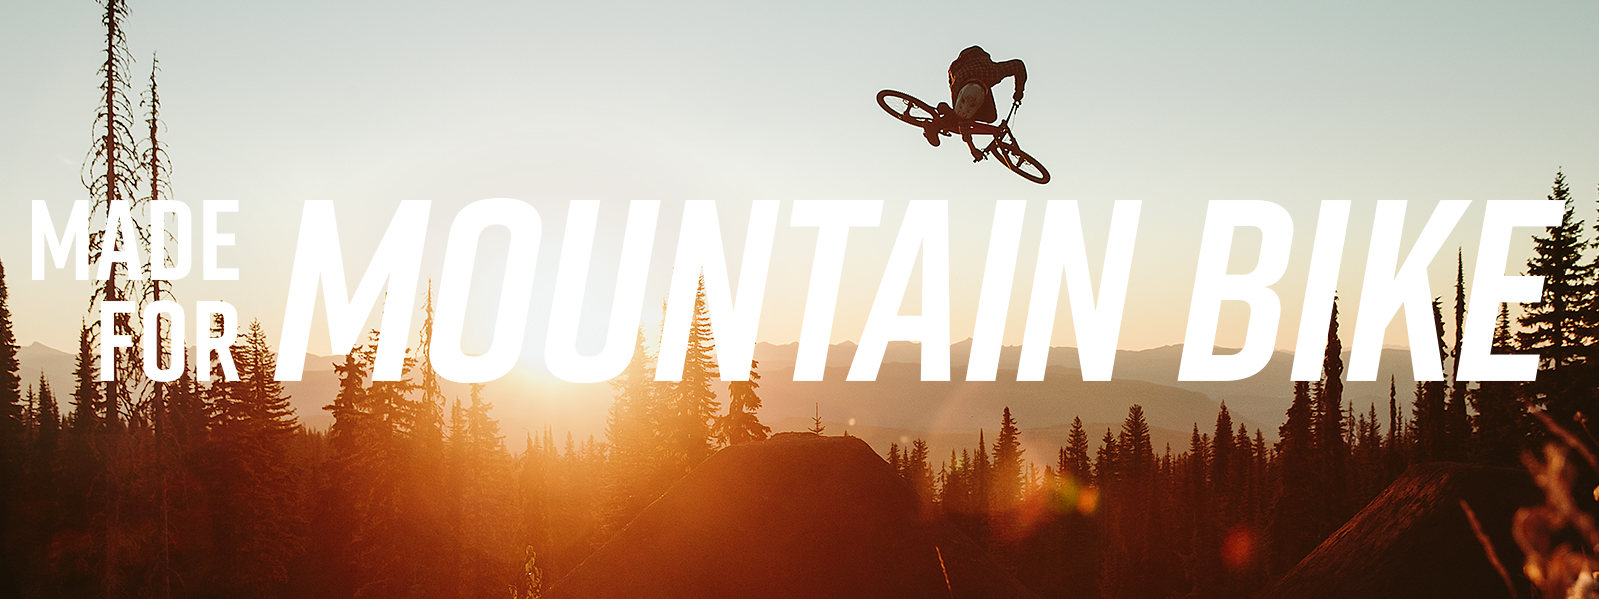 Full Banner_made for mountain bike